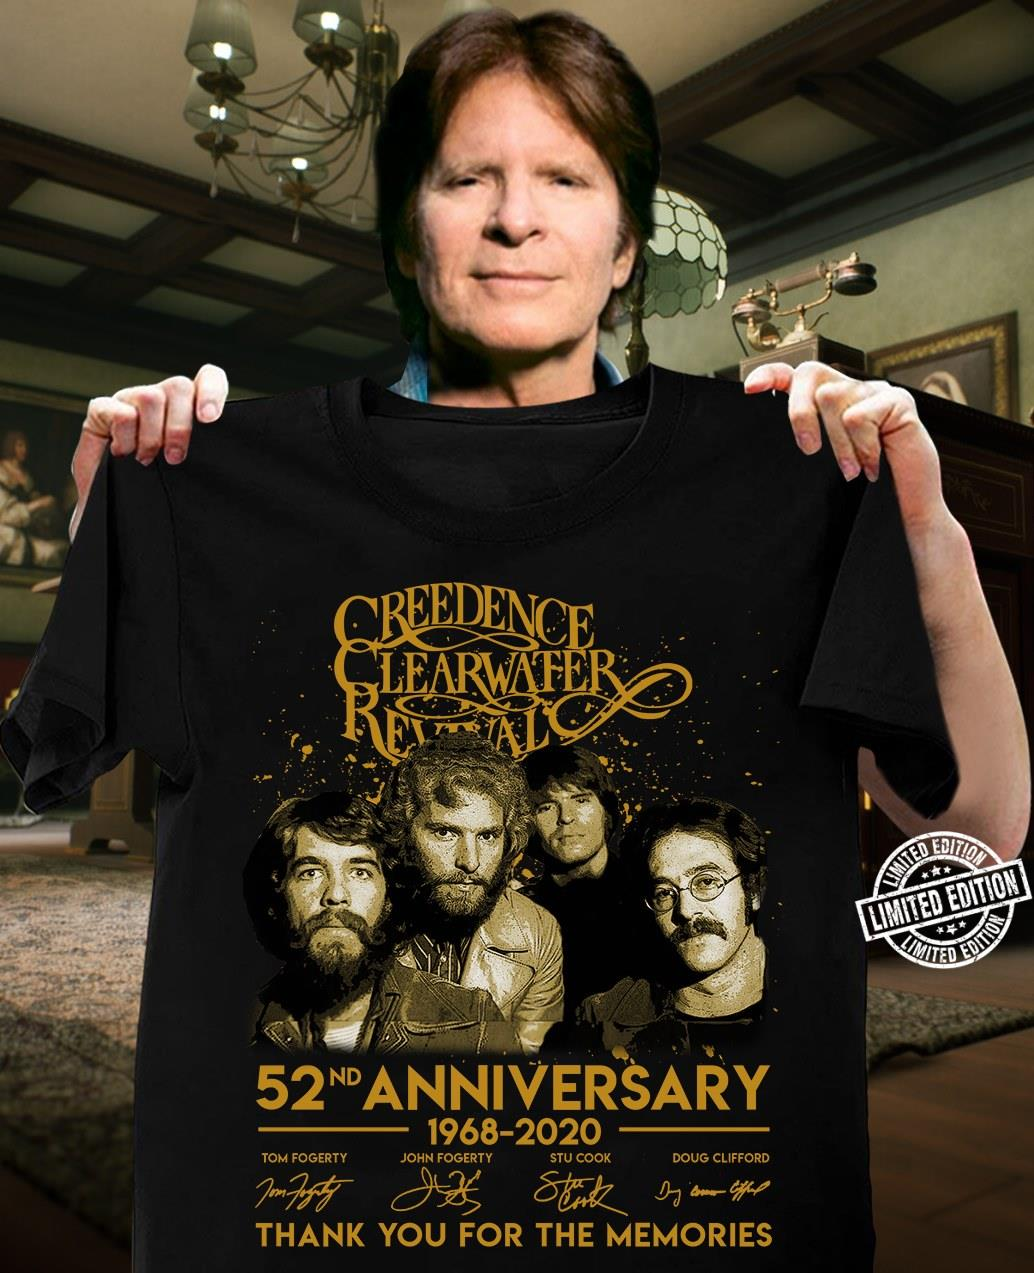 Creedence clearwater revival 52nd anniversary 1968-2020 thank you for the memories shirt